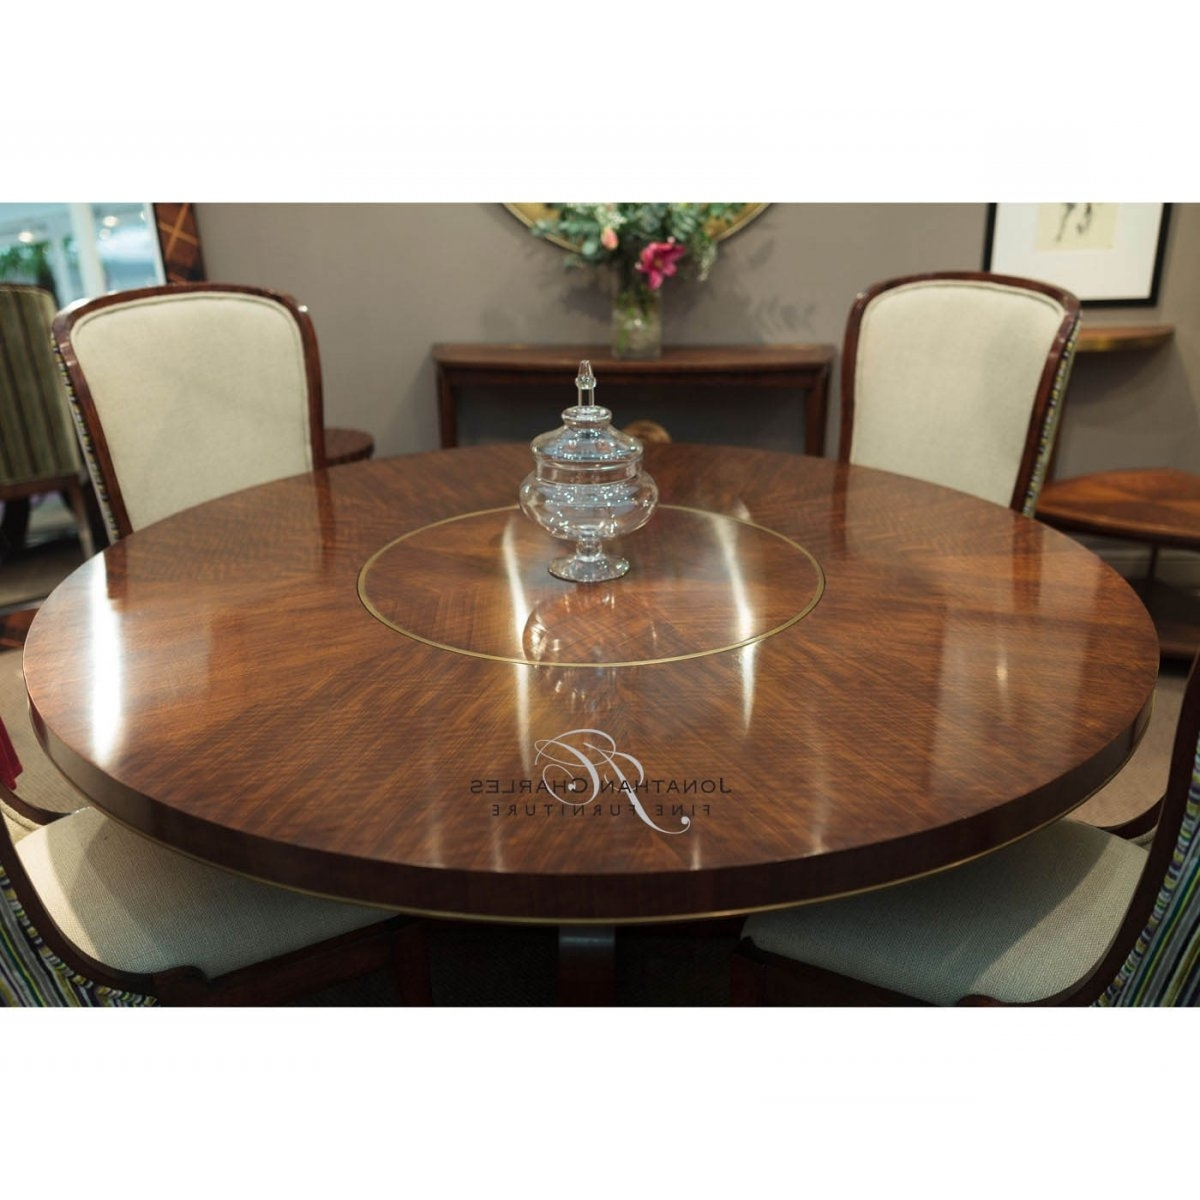 8 Seater Dining Tables within Popular Square Dining Table 8 Seater Glass Dining Room Table And Chairs